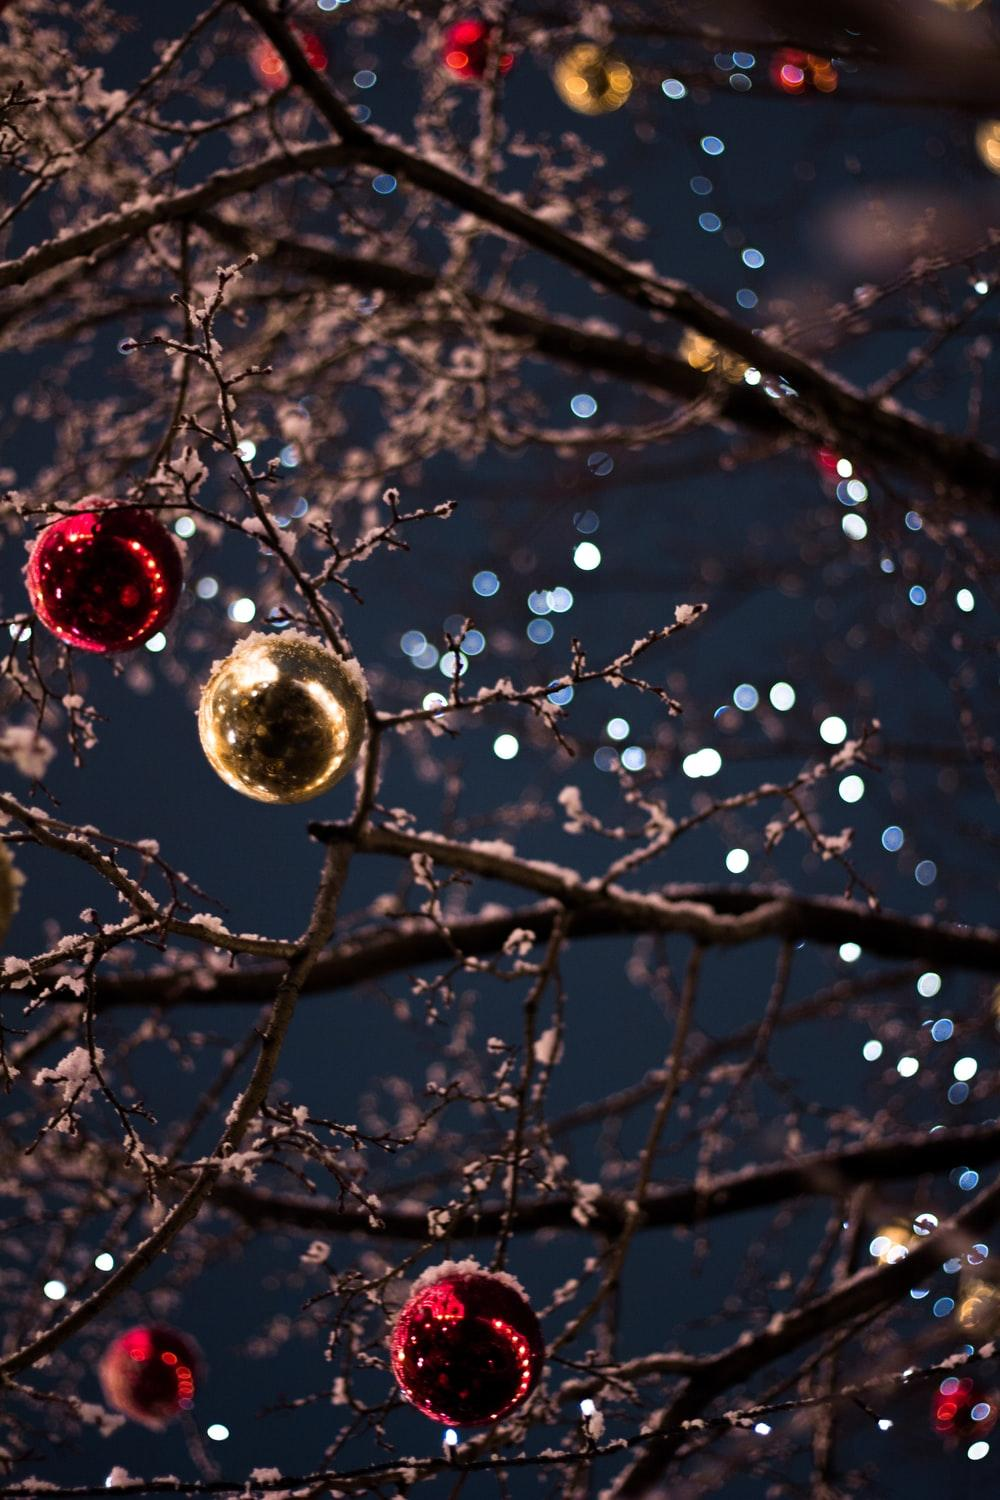 900+ Christmas Backgrounds Image: Download HD Backgrounds on Unsplash